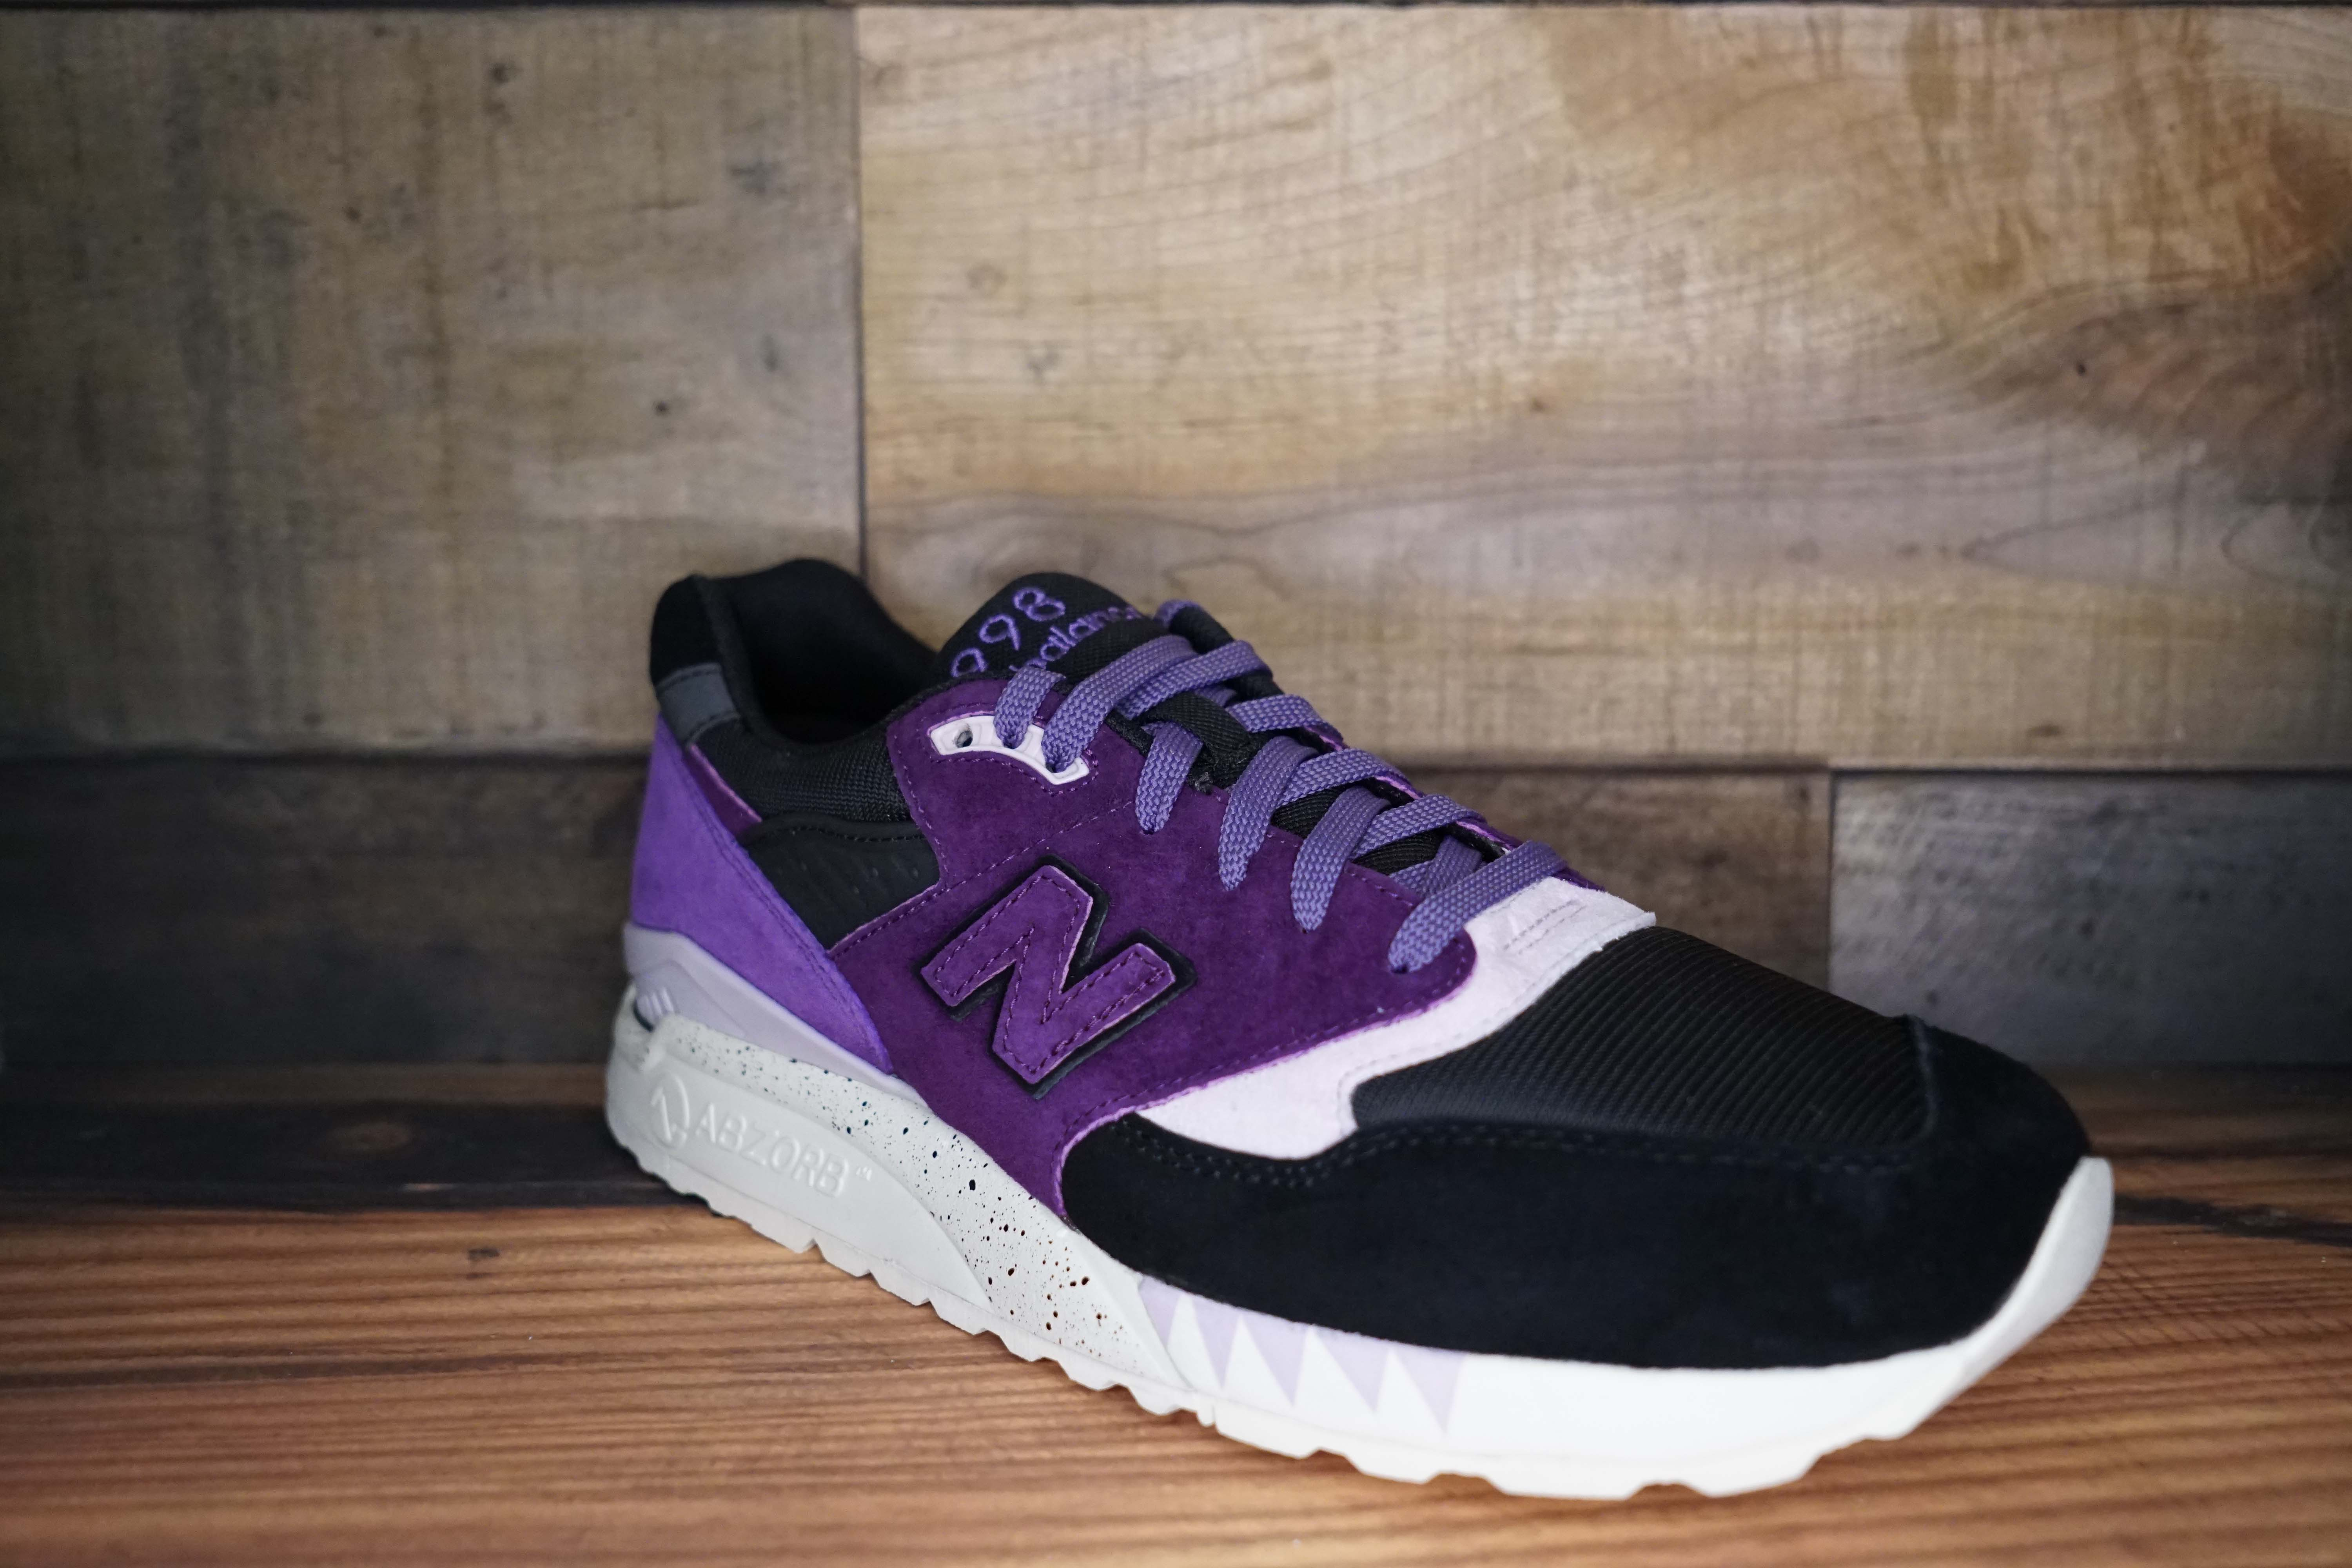 New-Balance-CM998SNF-TASSIE-DEVIL-Size-11-New-with-Original-Box_2228B.jpg